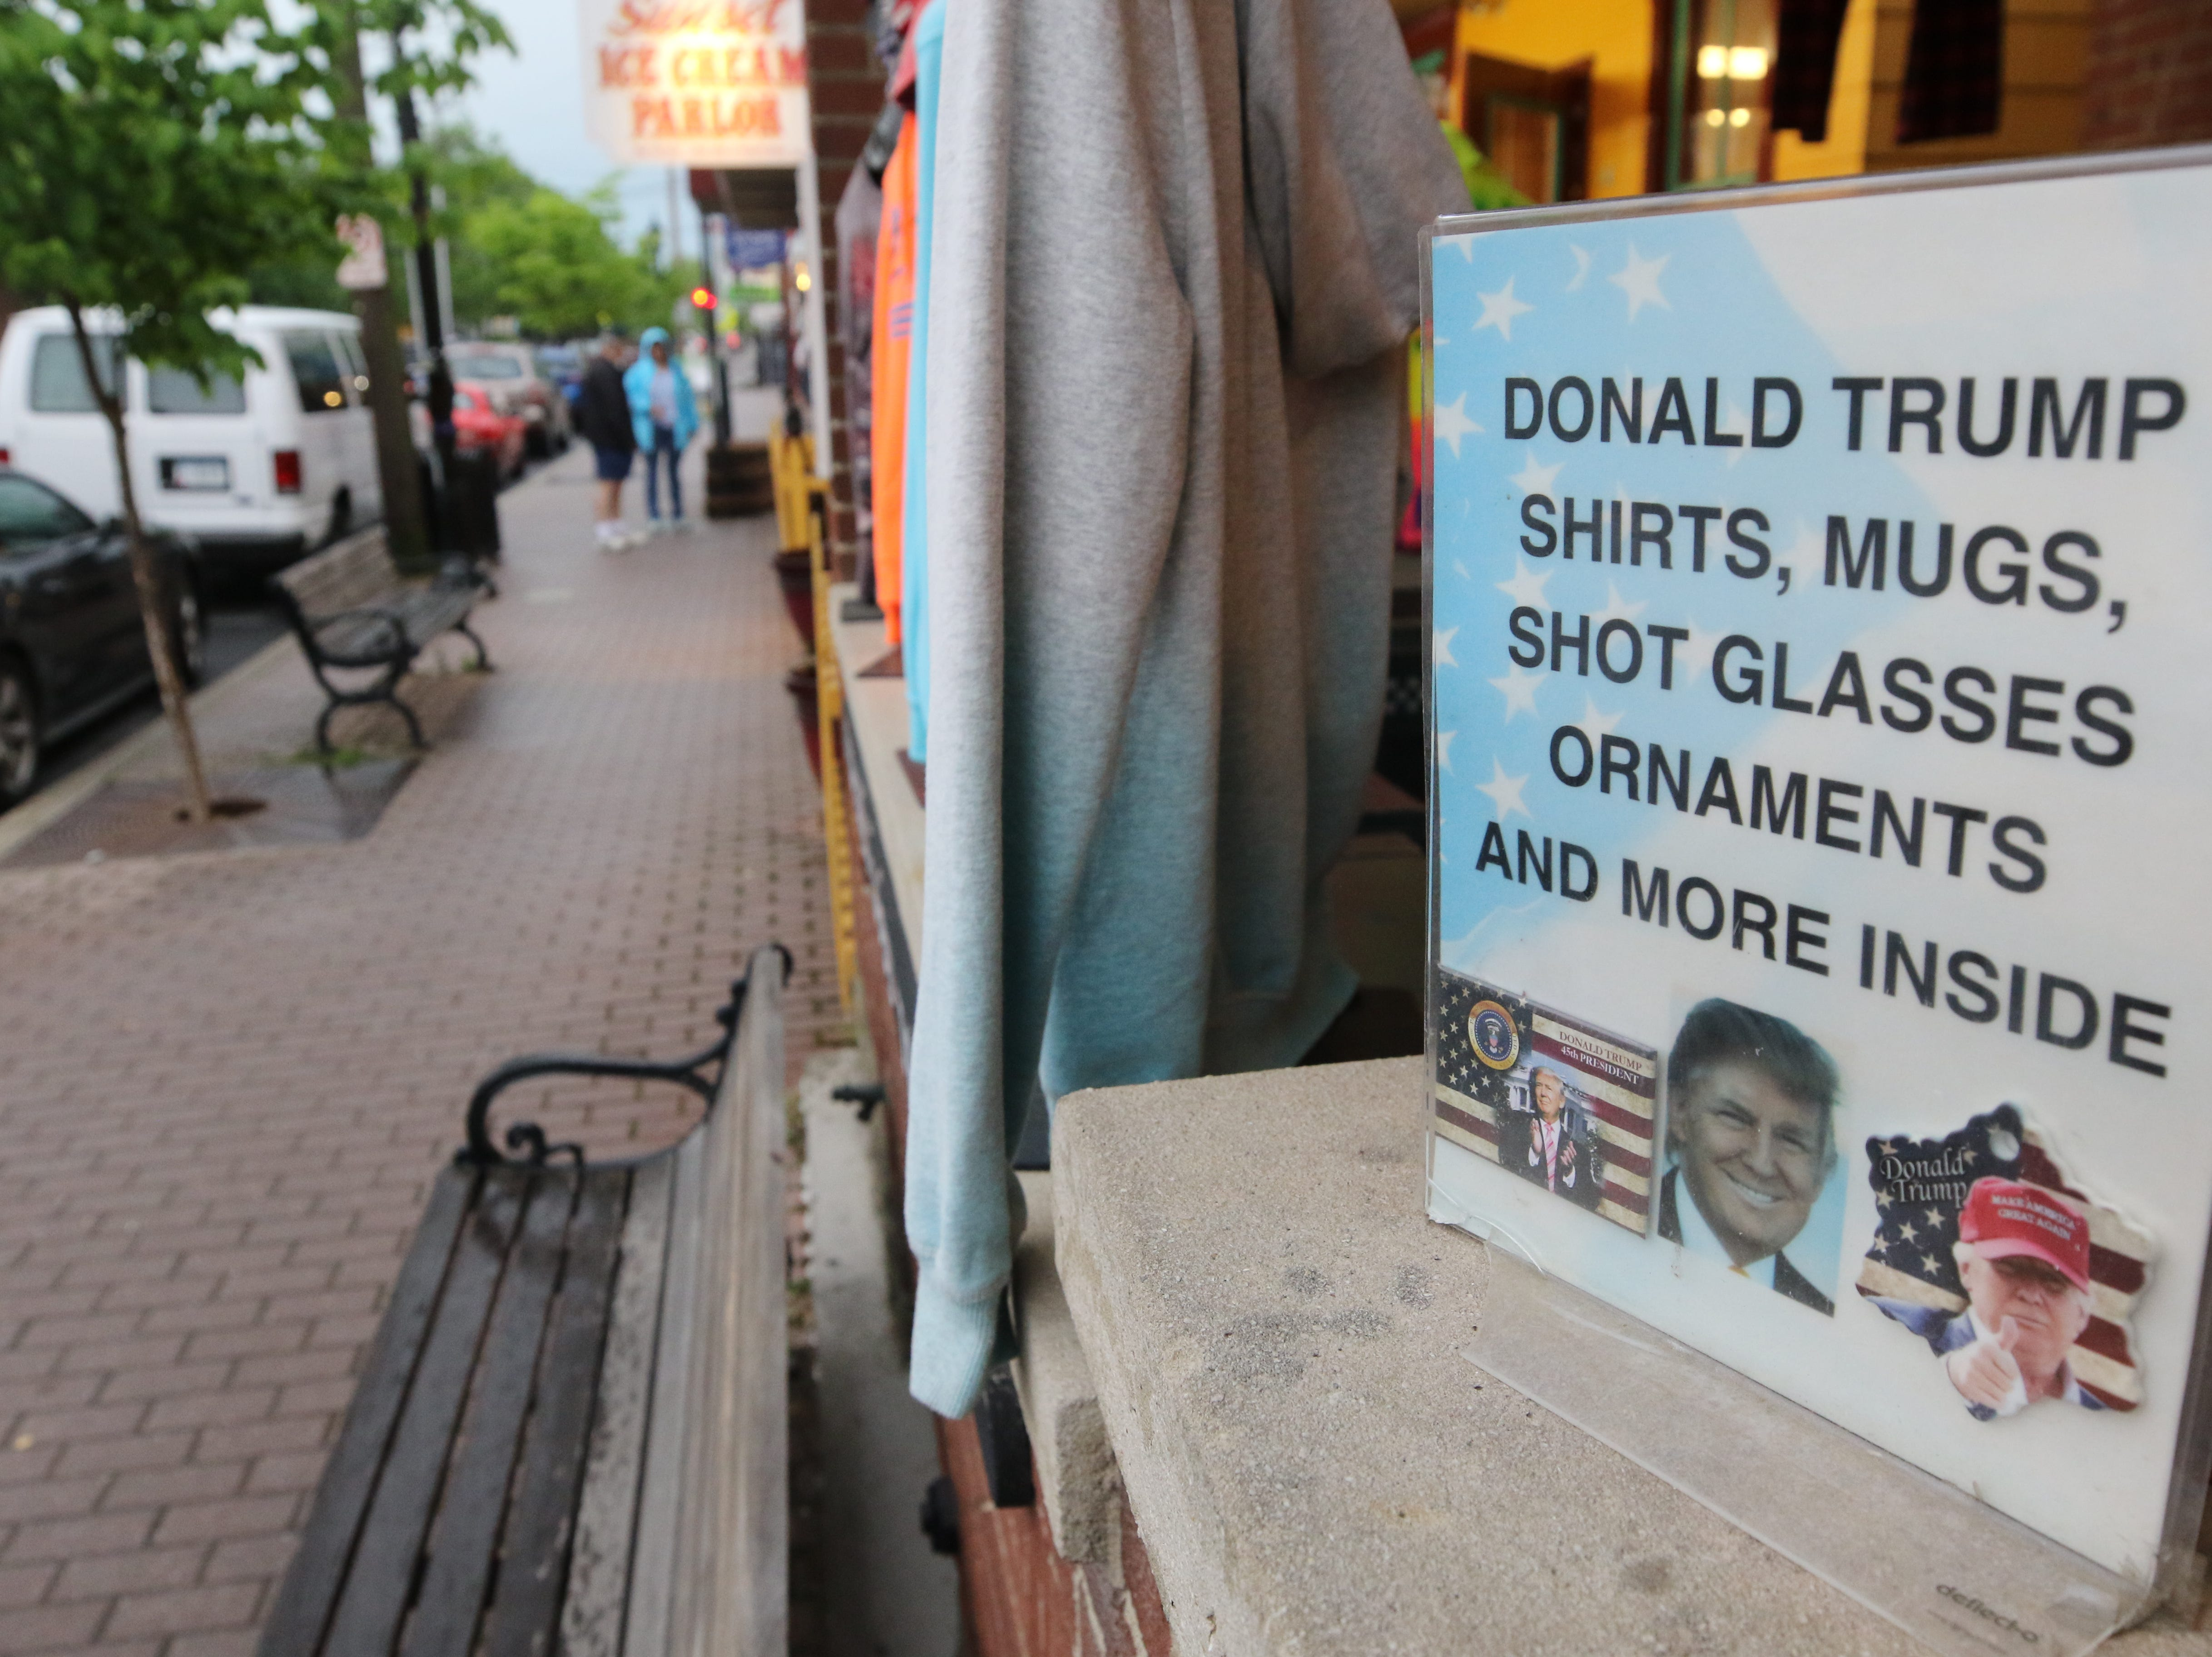 A souvenir shop offers Donald Trump gifts and collectibles.